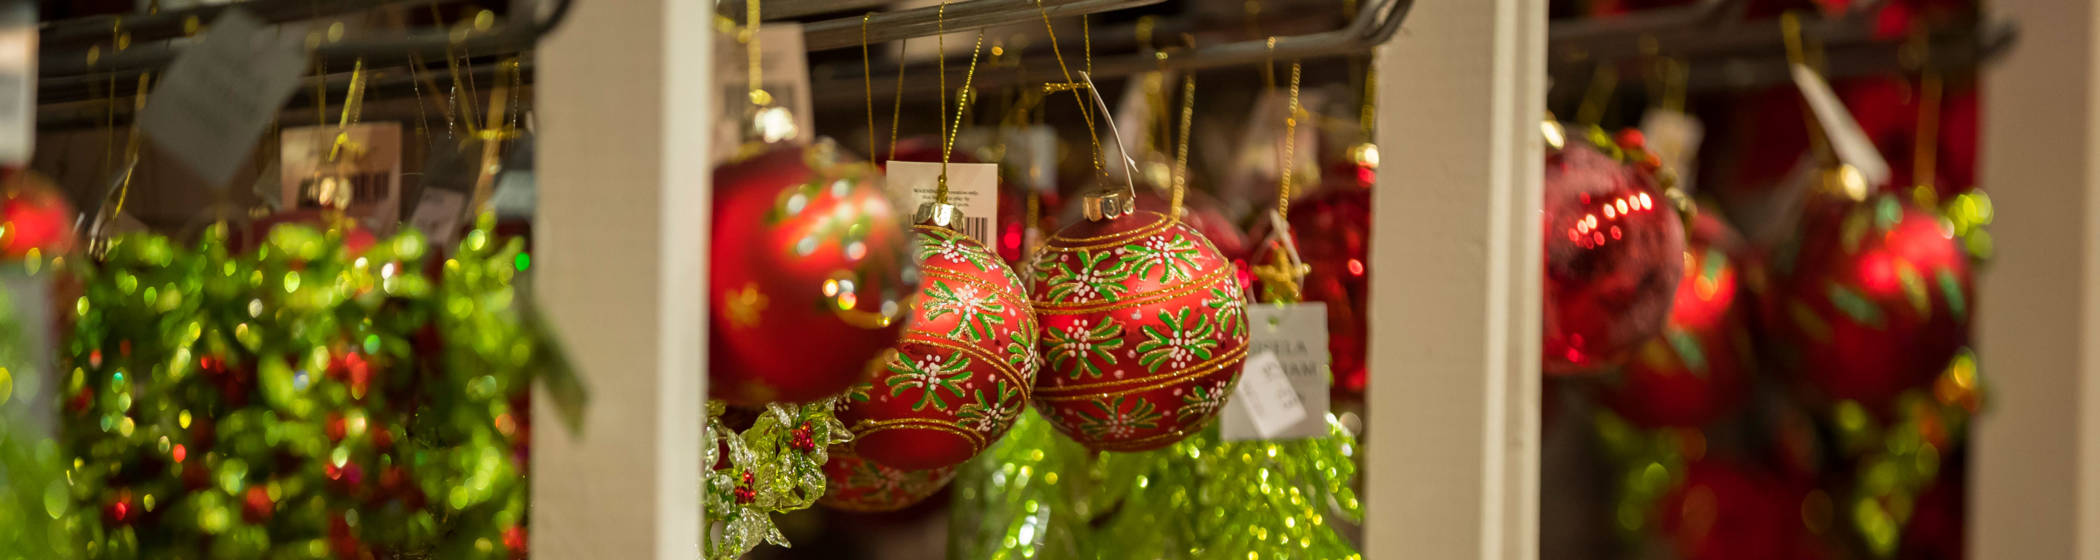 Christmas baubles in the manor shop